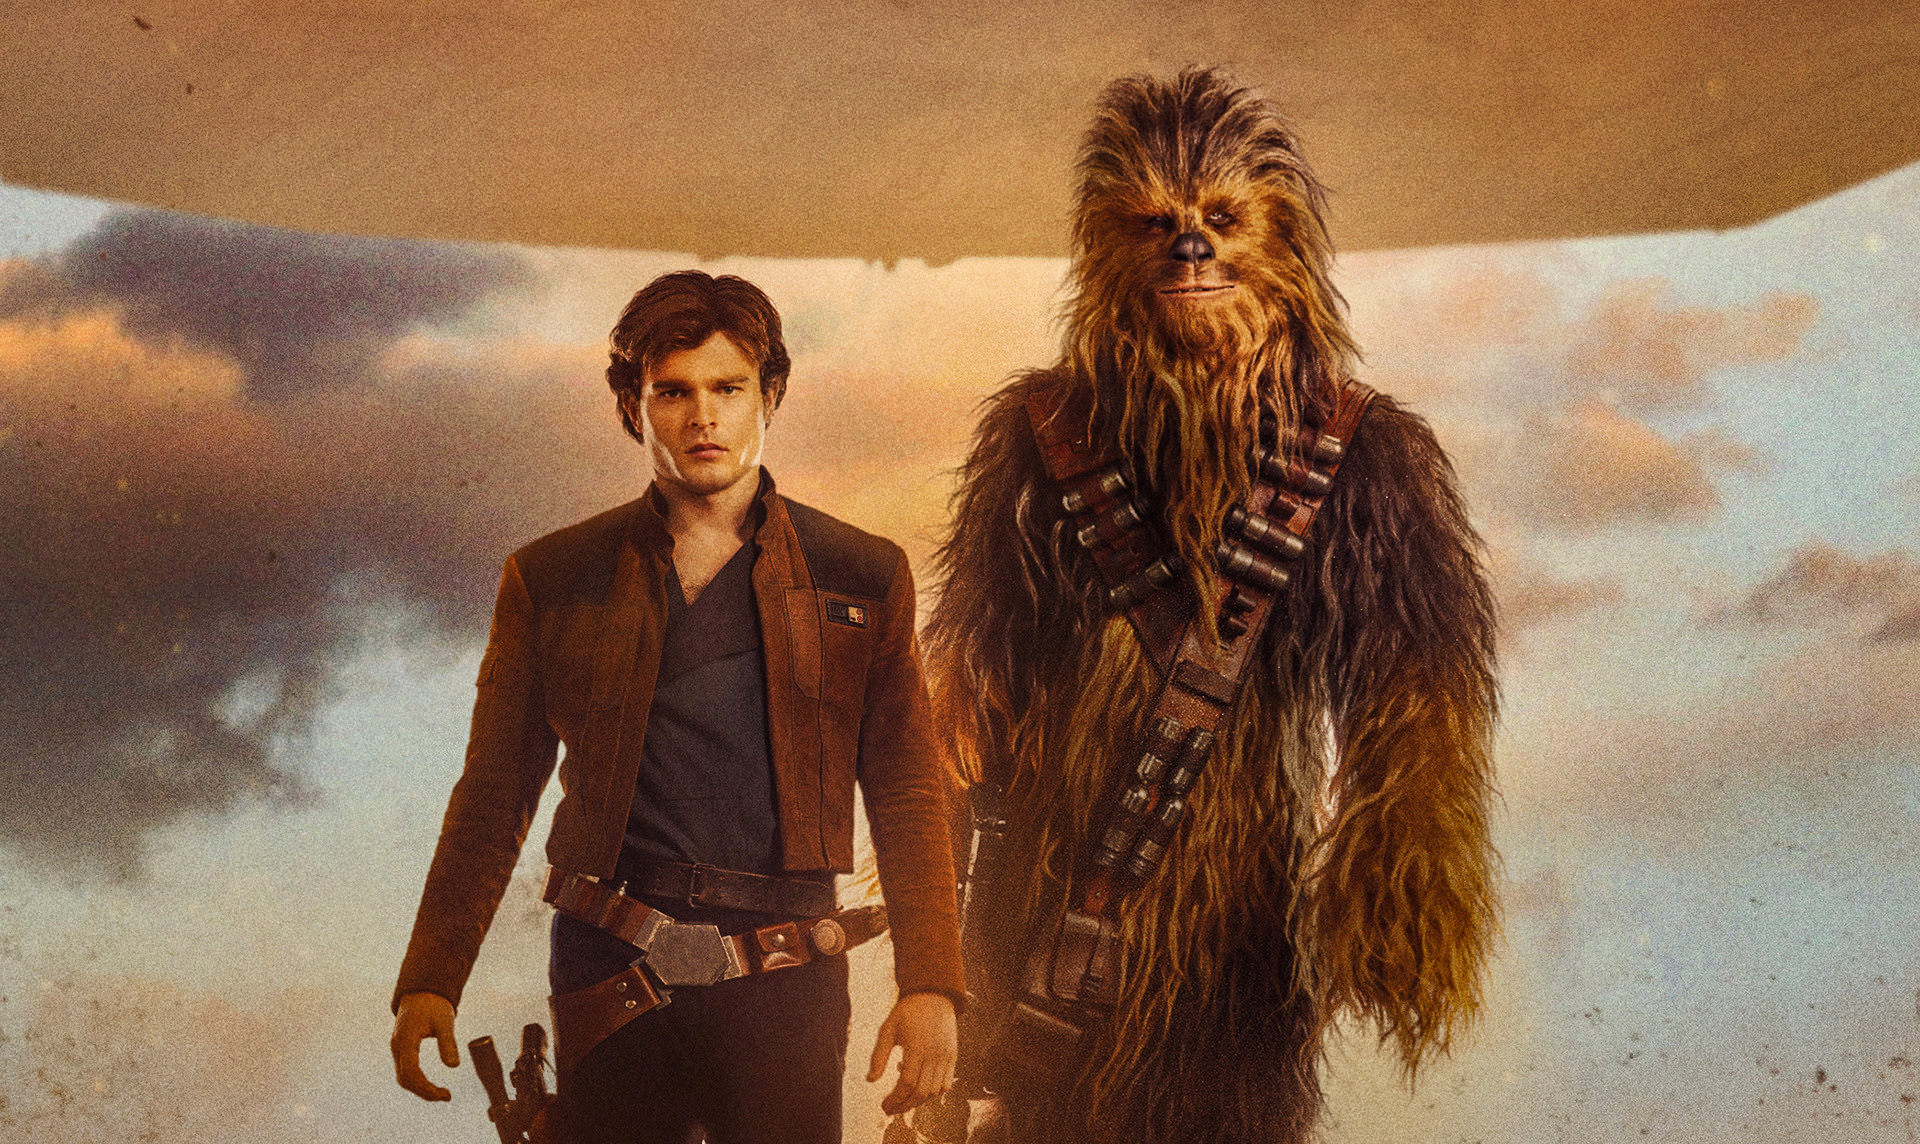 solo-a-star-wars-story-film-poster-han-chewie.jpg